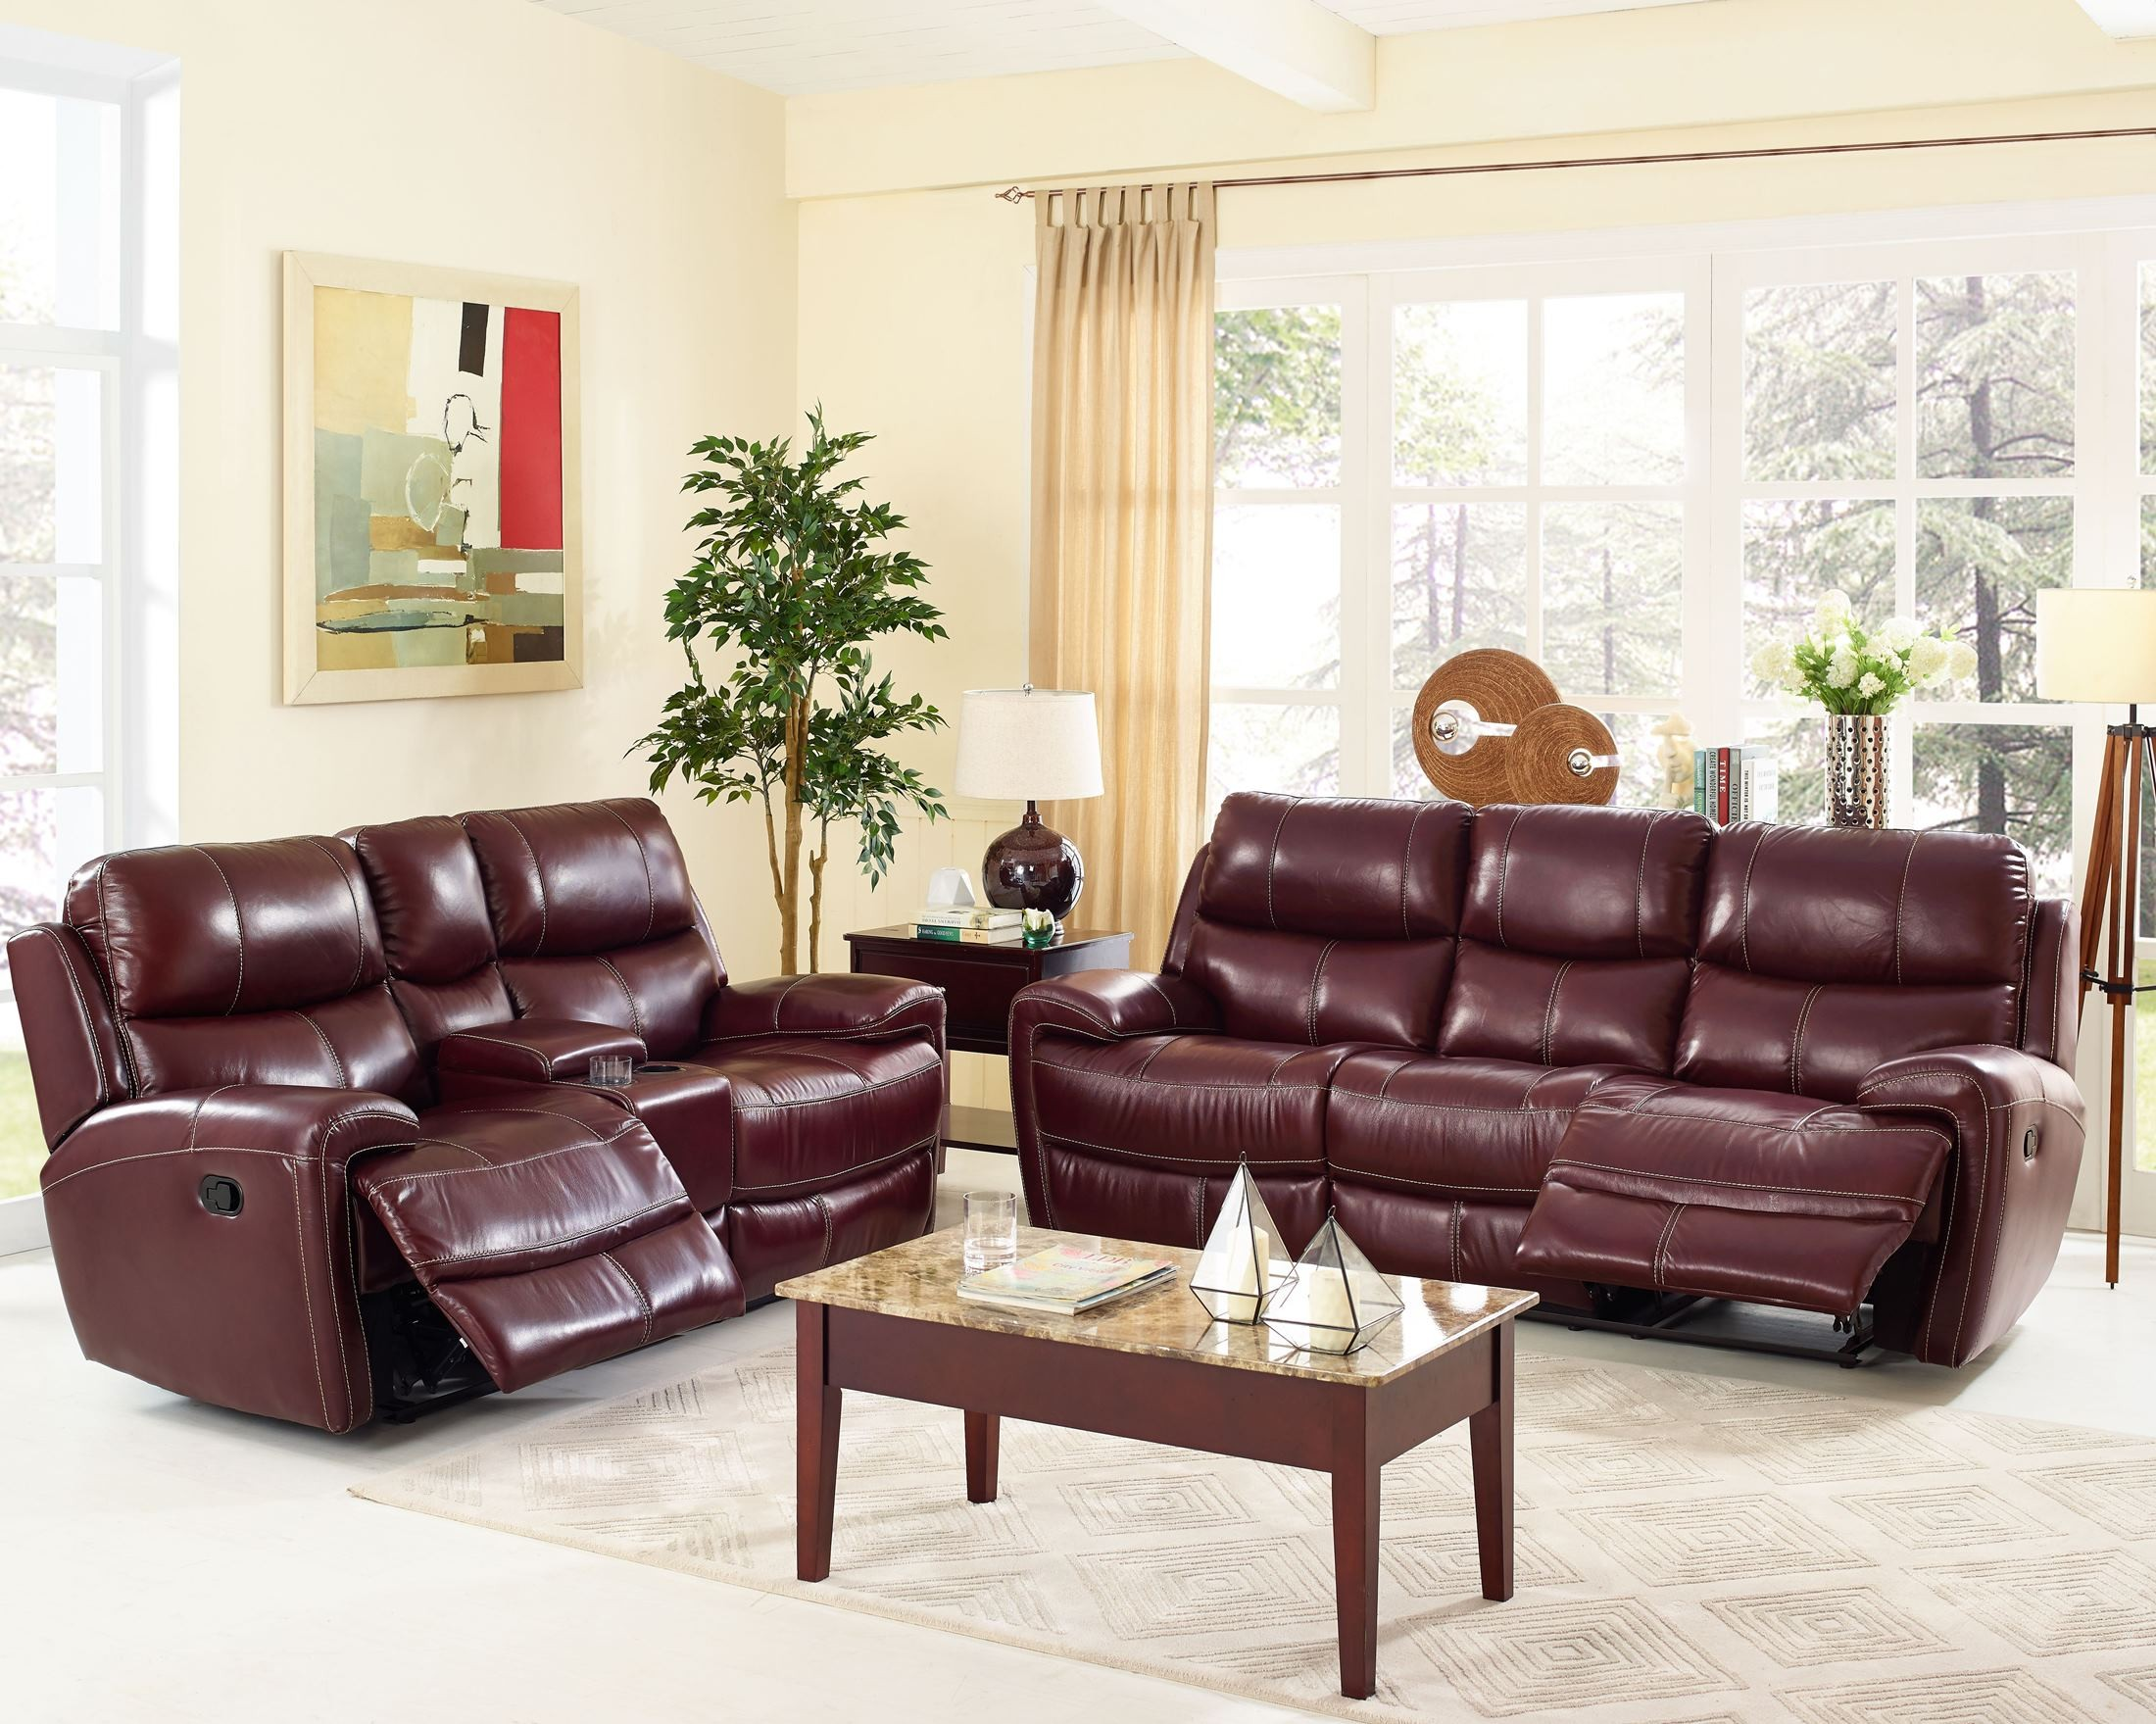 Boulevard Burgundy Power Dual Reclining Living Room Set From New Classic Co